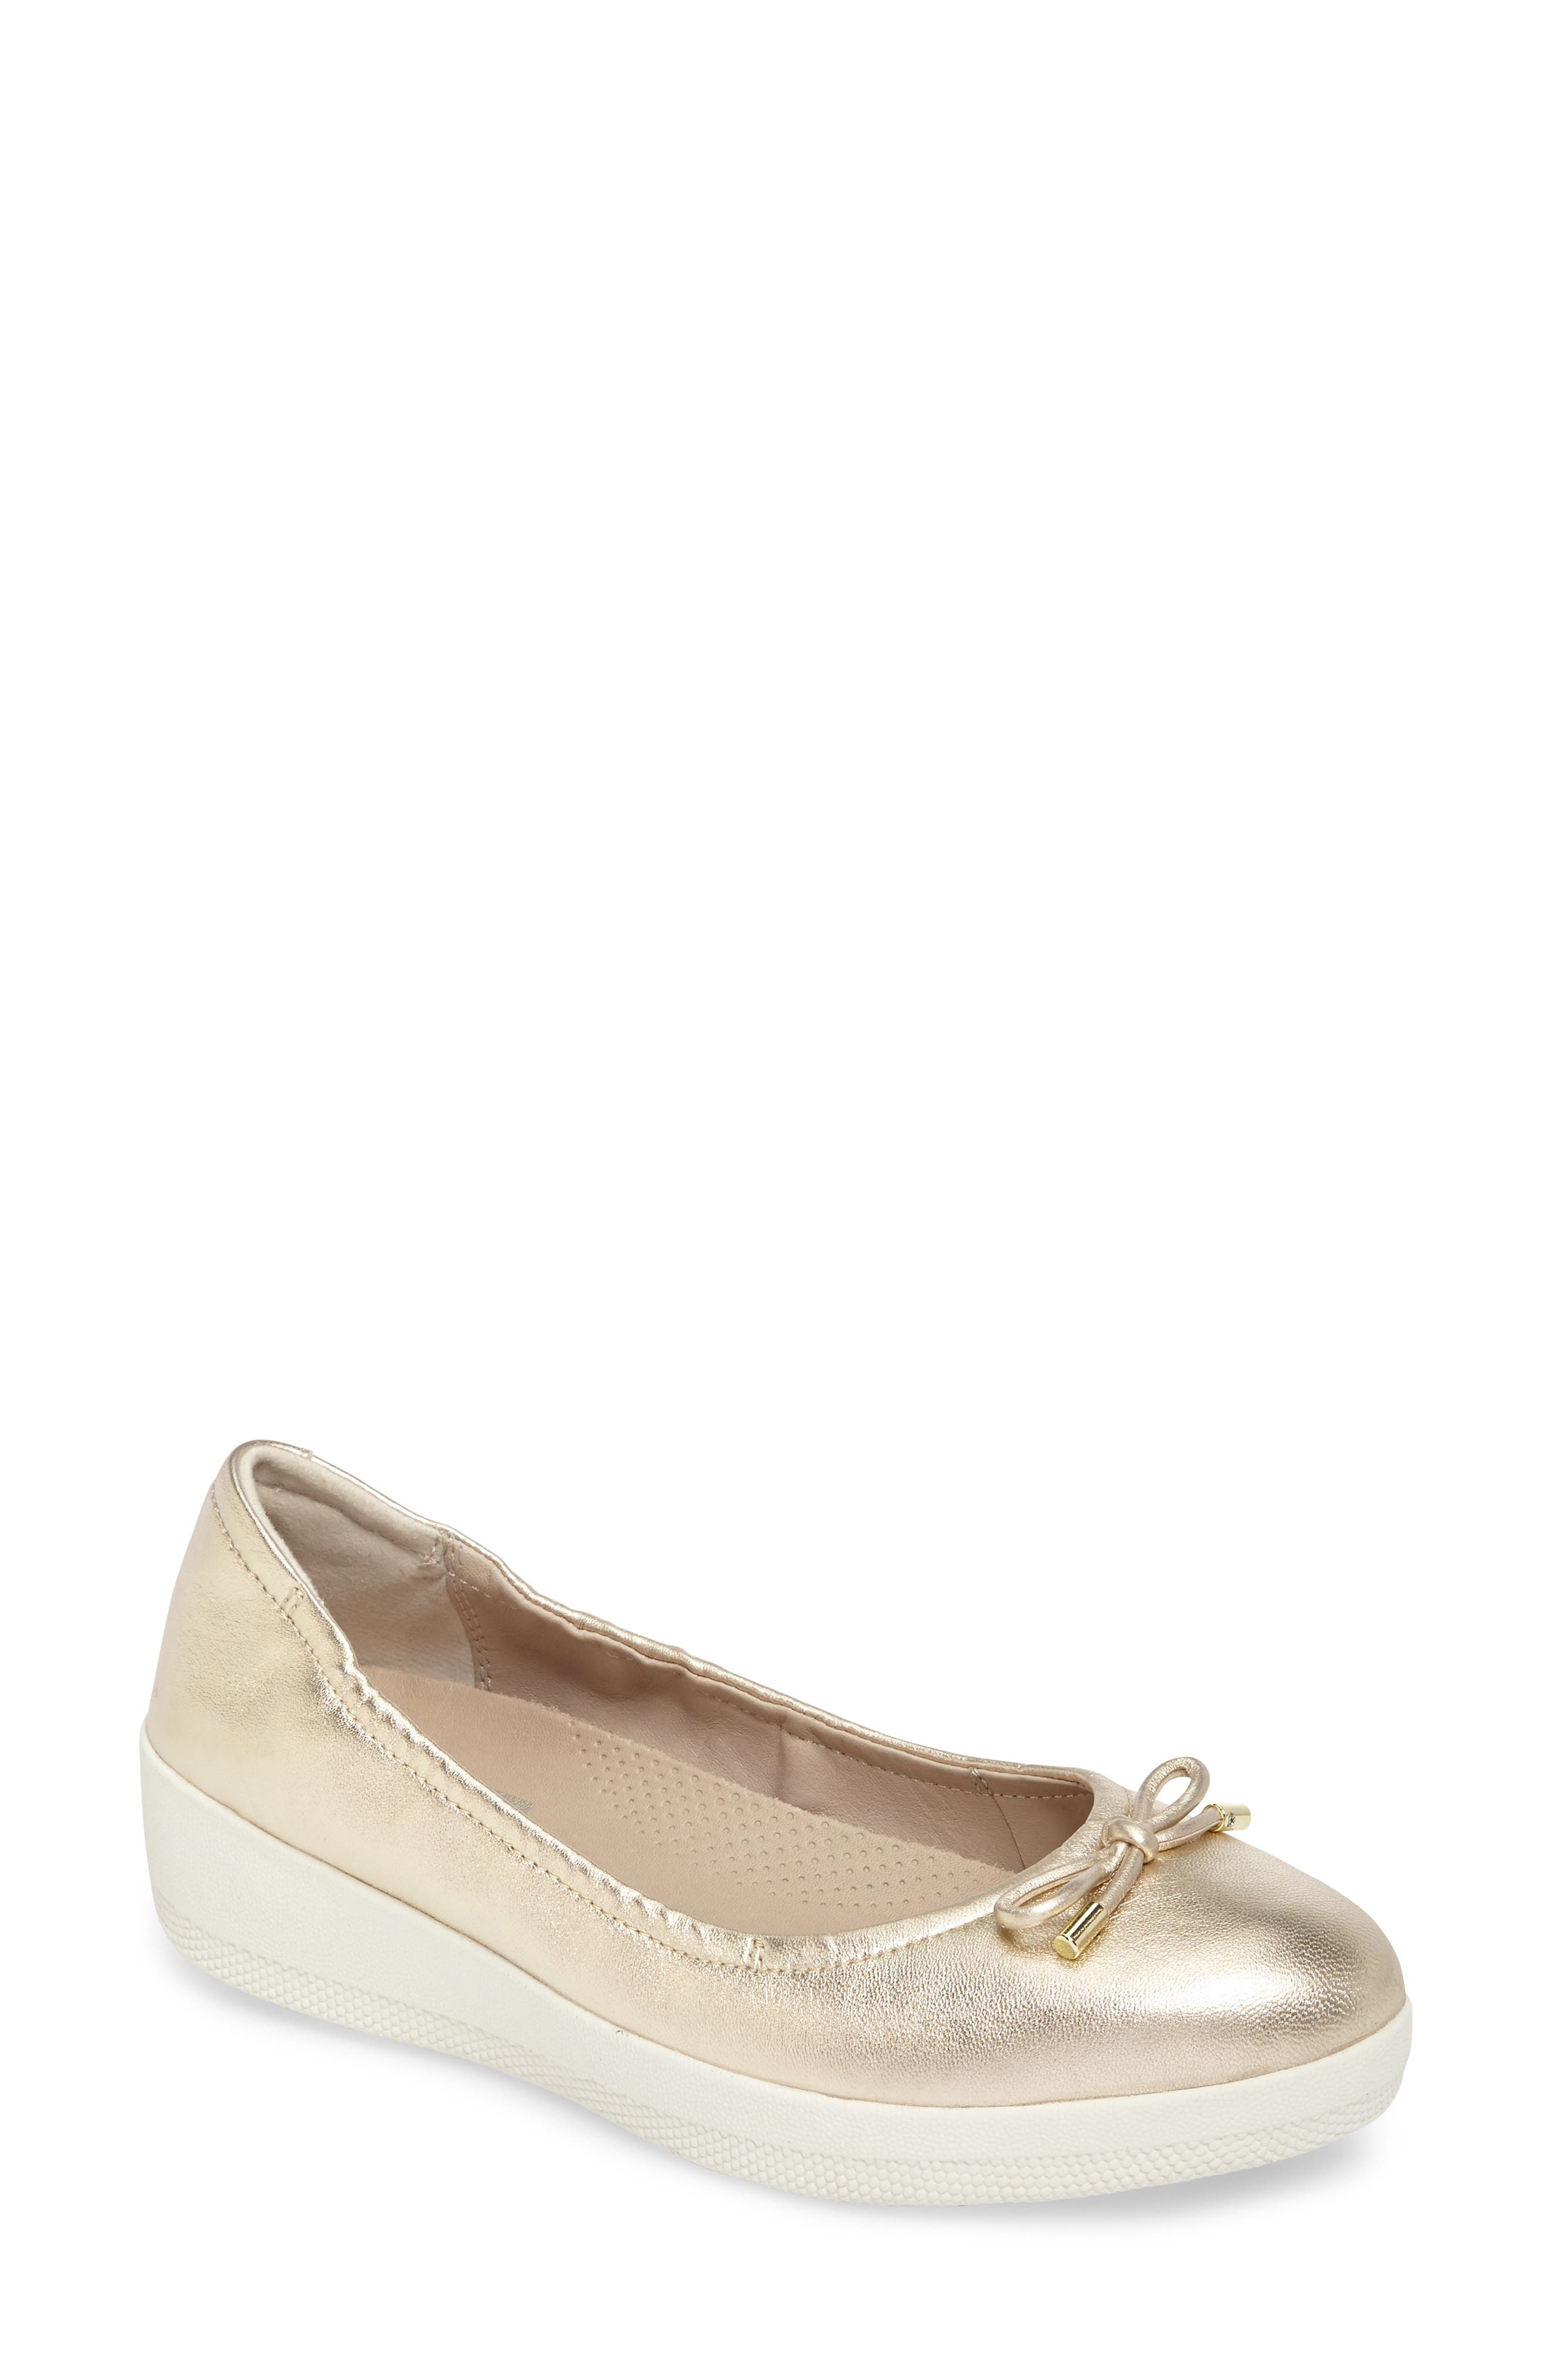 Superbendy Ballerina Flat,                             Main thumbnail 1, color,                             Pale Gold Leather